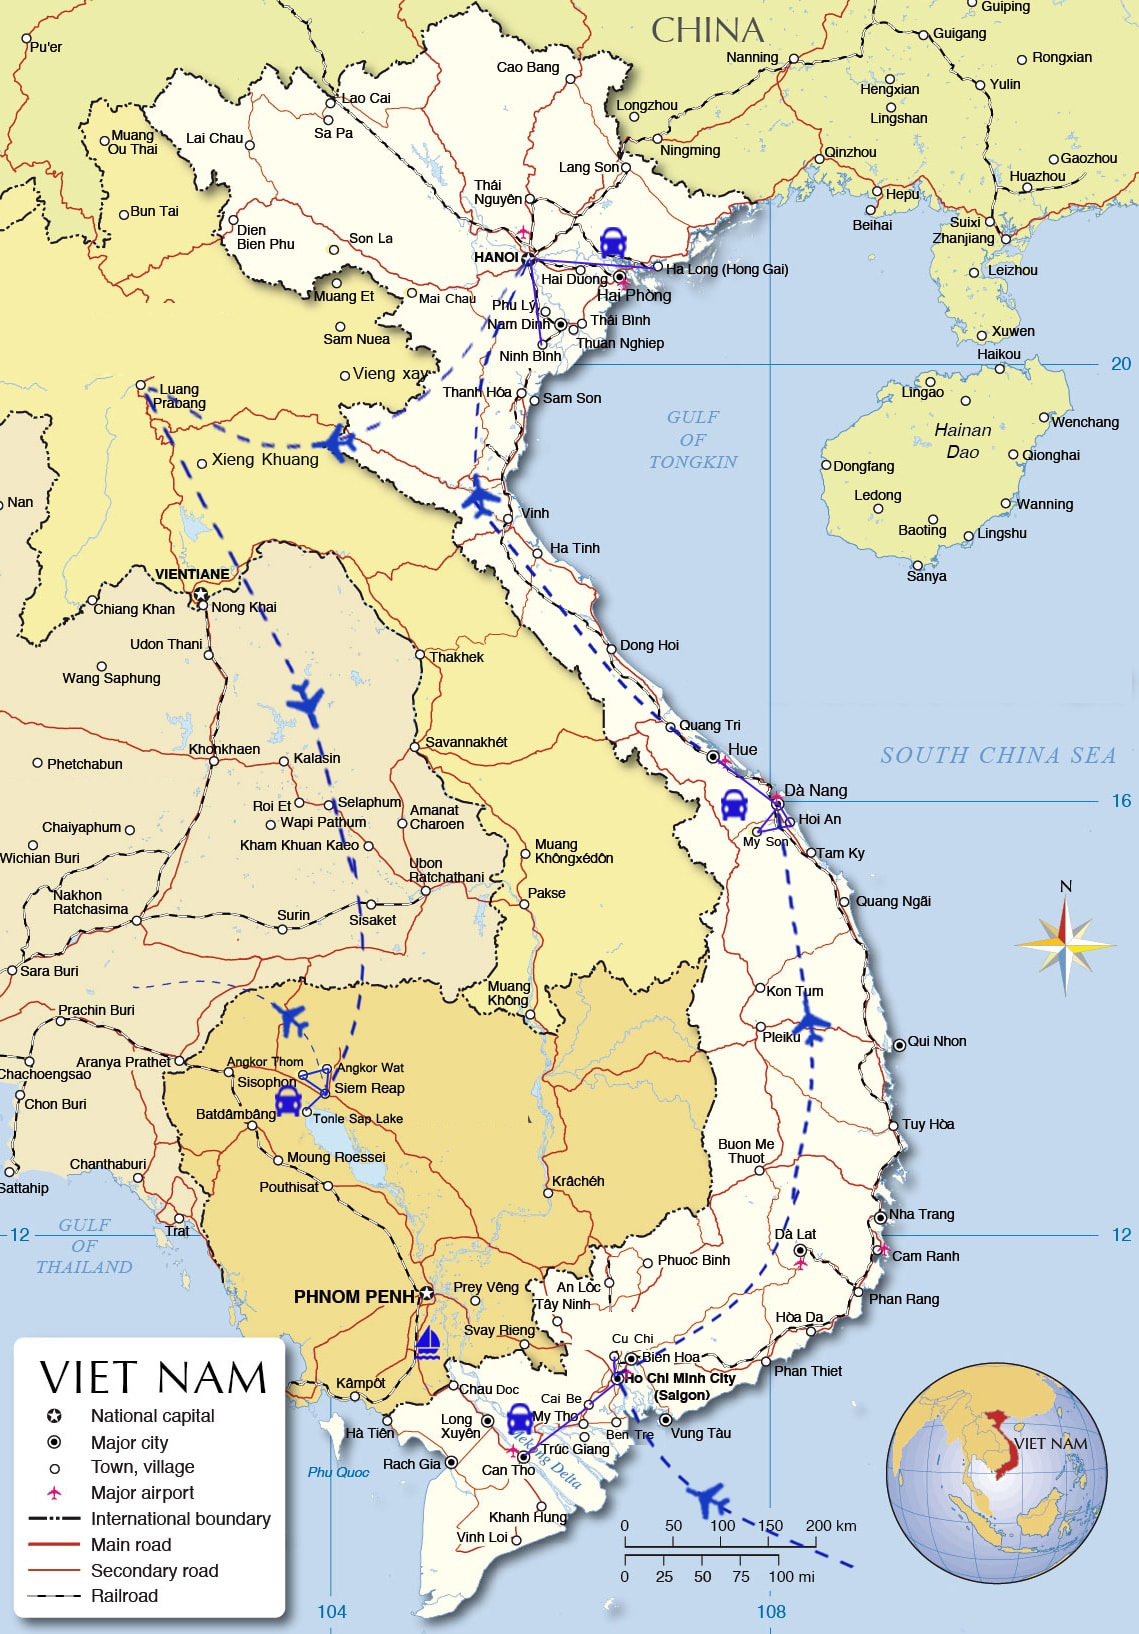 ILT02: Classic Indochina Tour Package - 18 days from Ho Chi Minh City map